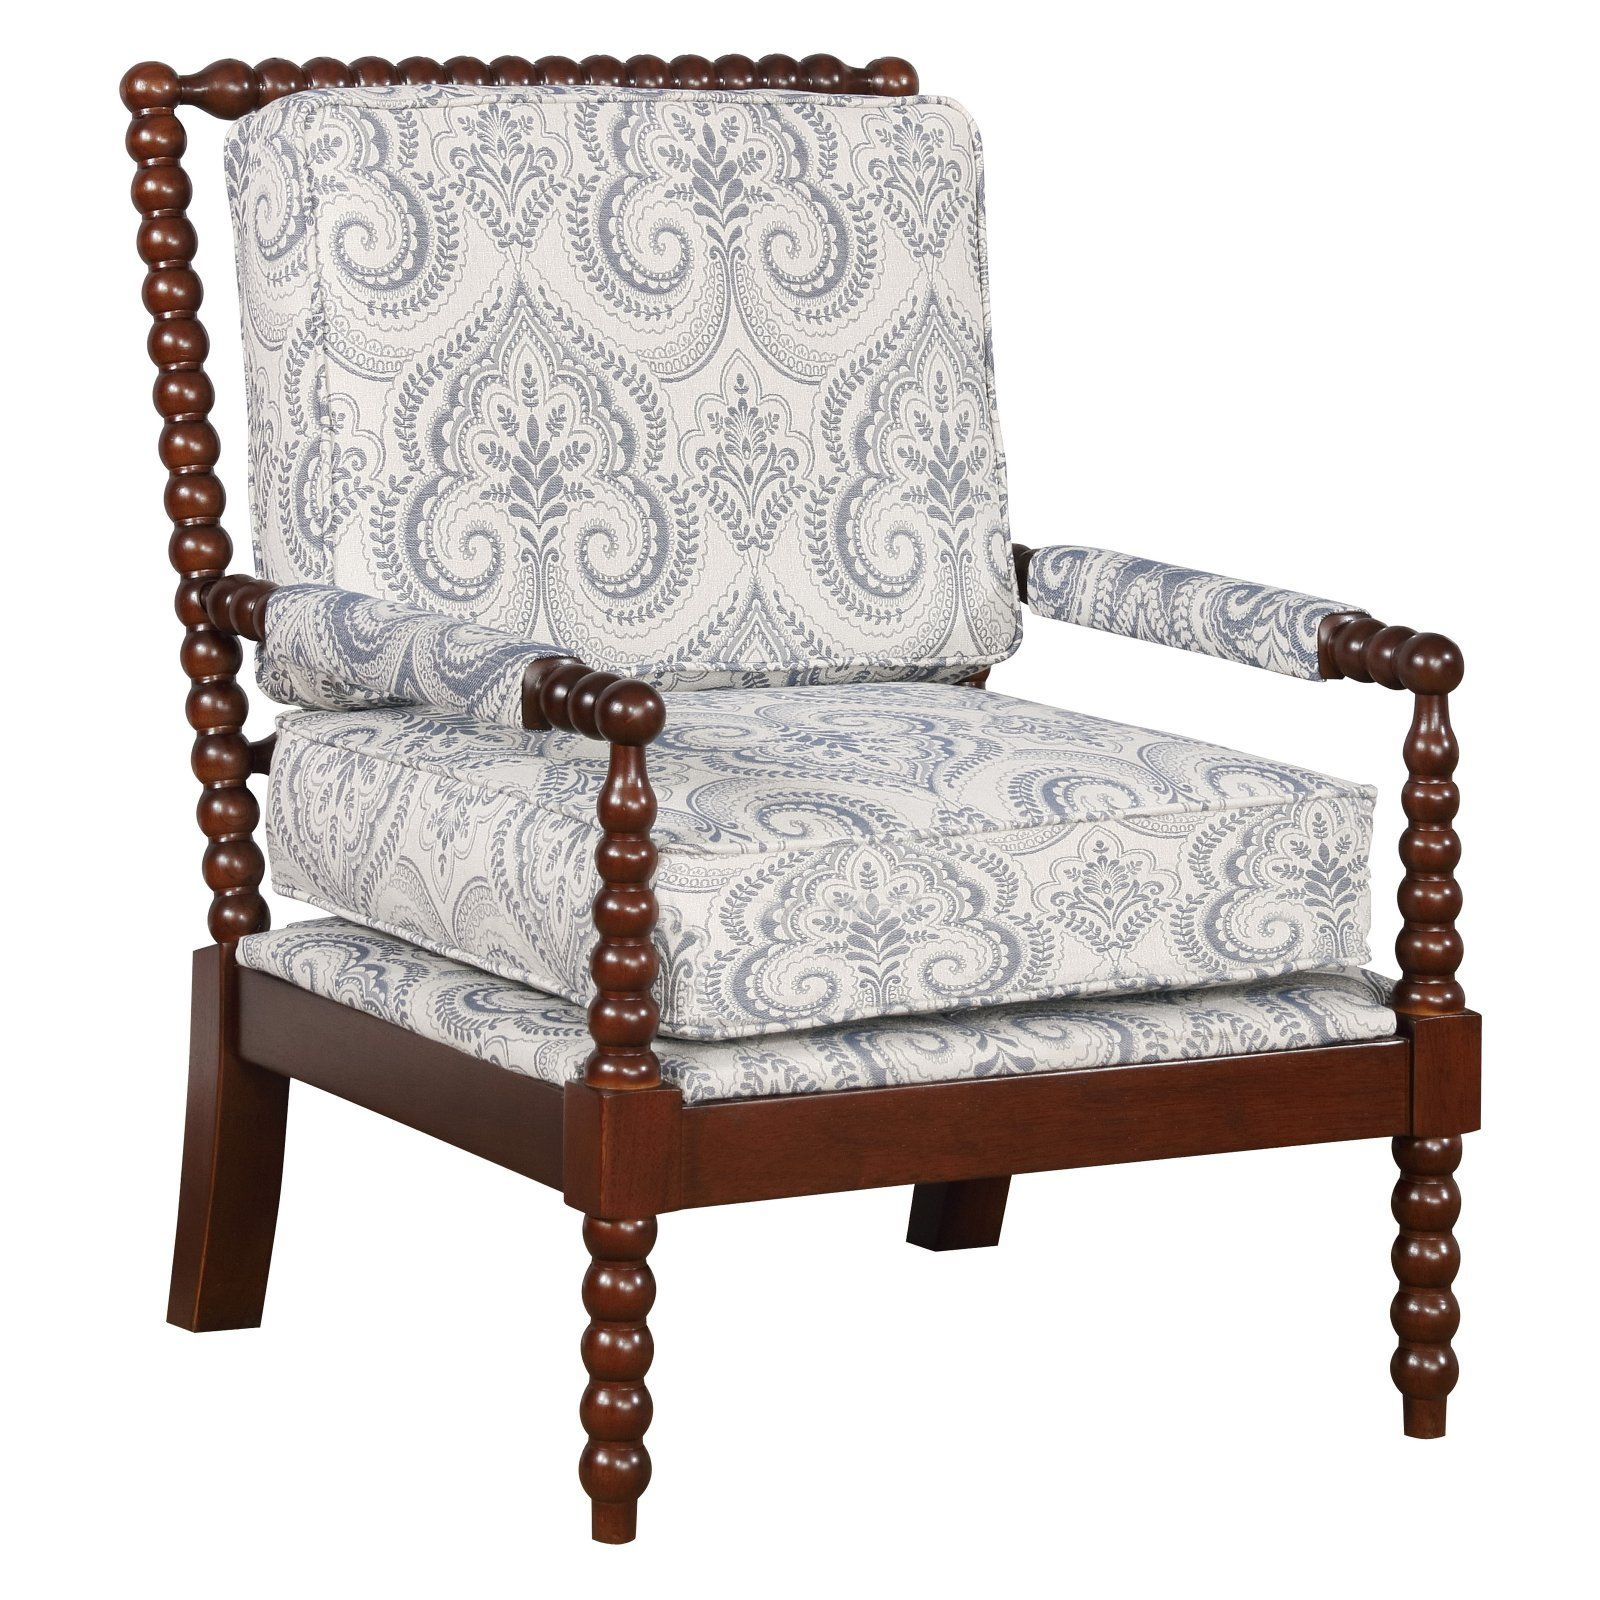 Home in 2020 Linon, Chair, Spindle chair